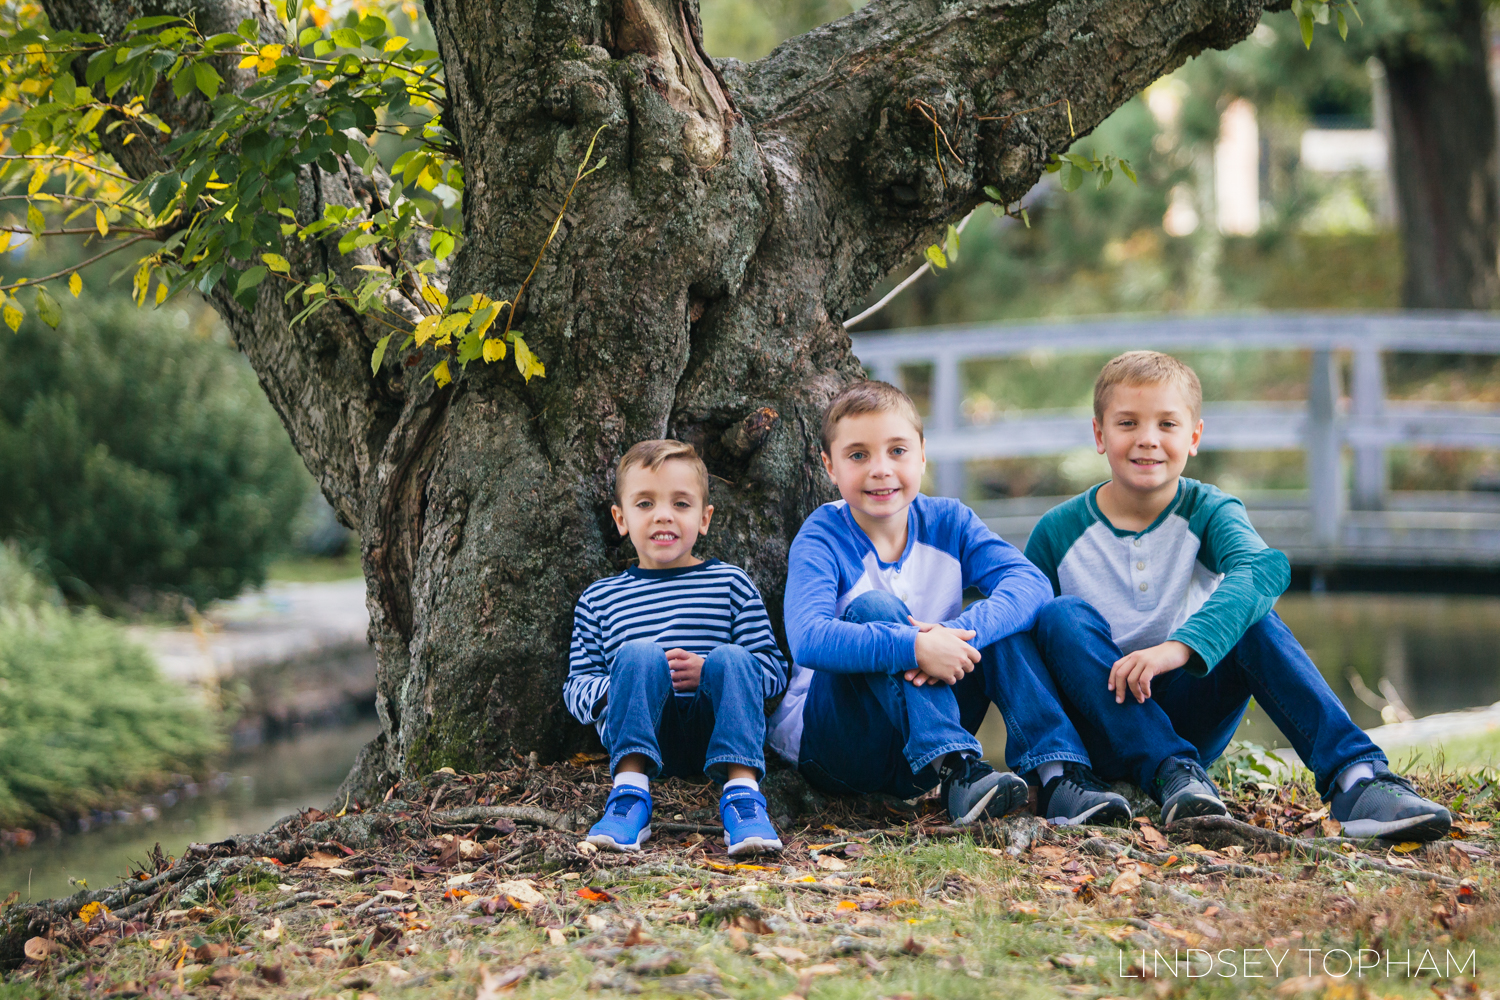 Tis' the season! book your family session today! -